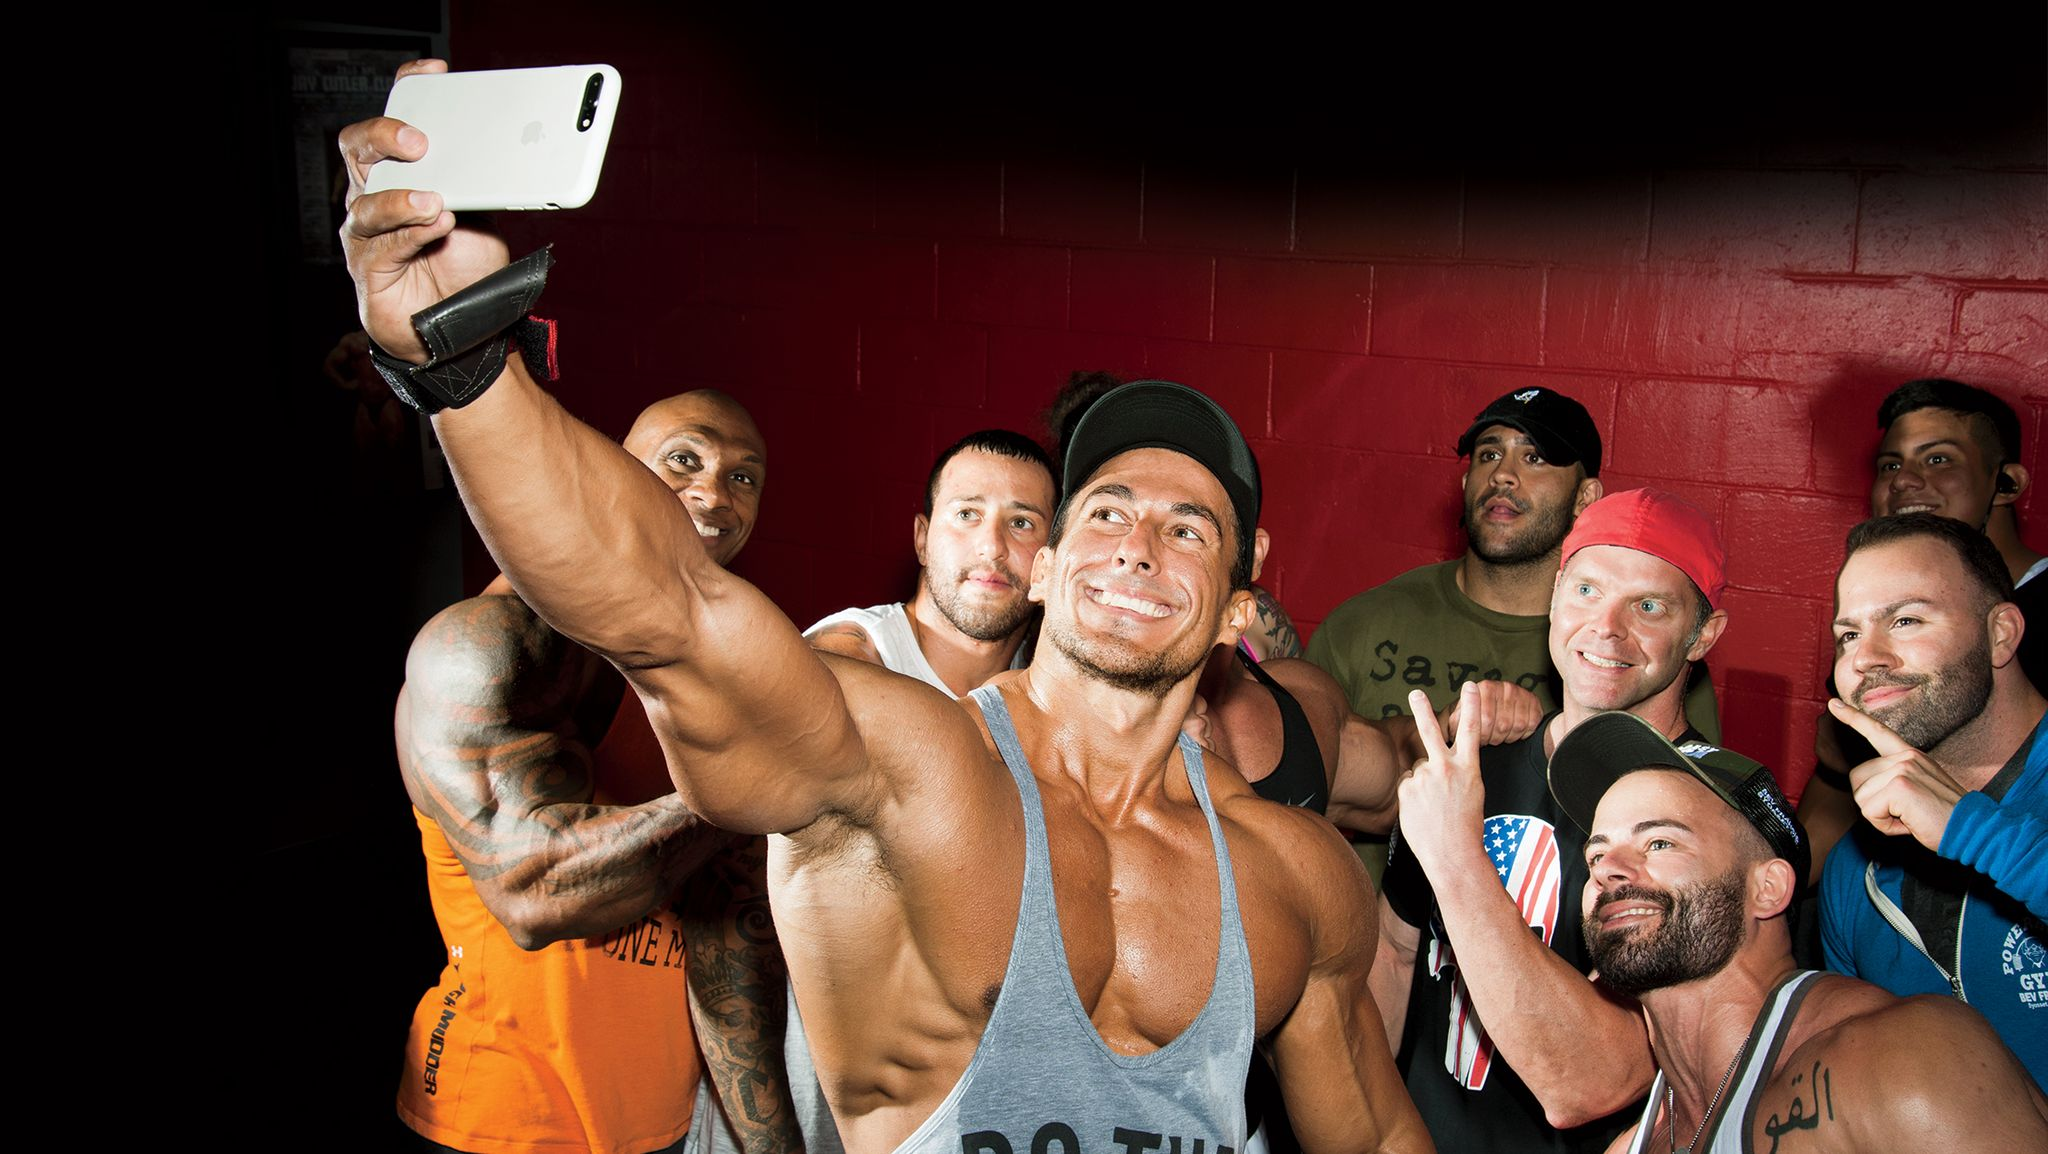 Muscle in the Age of Instagram